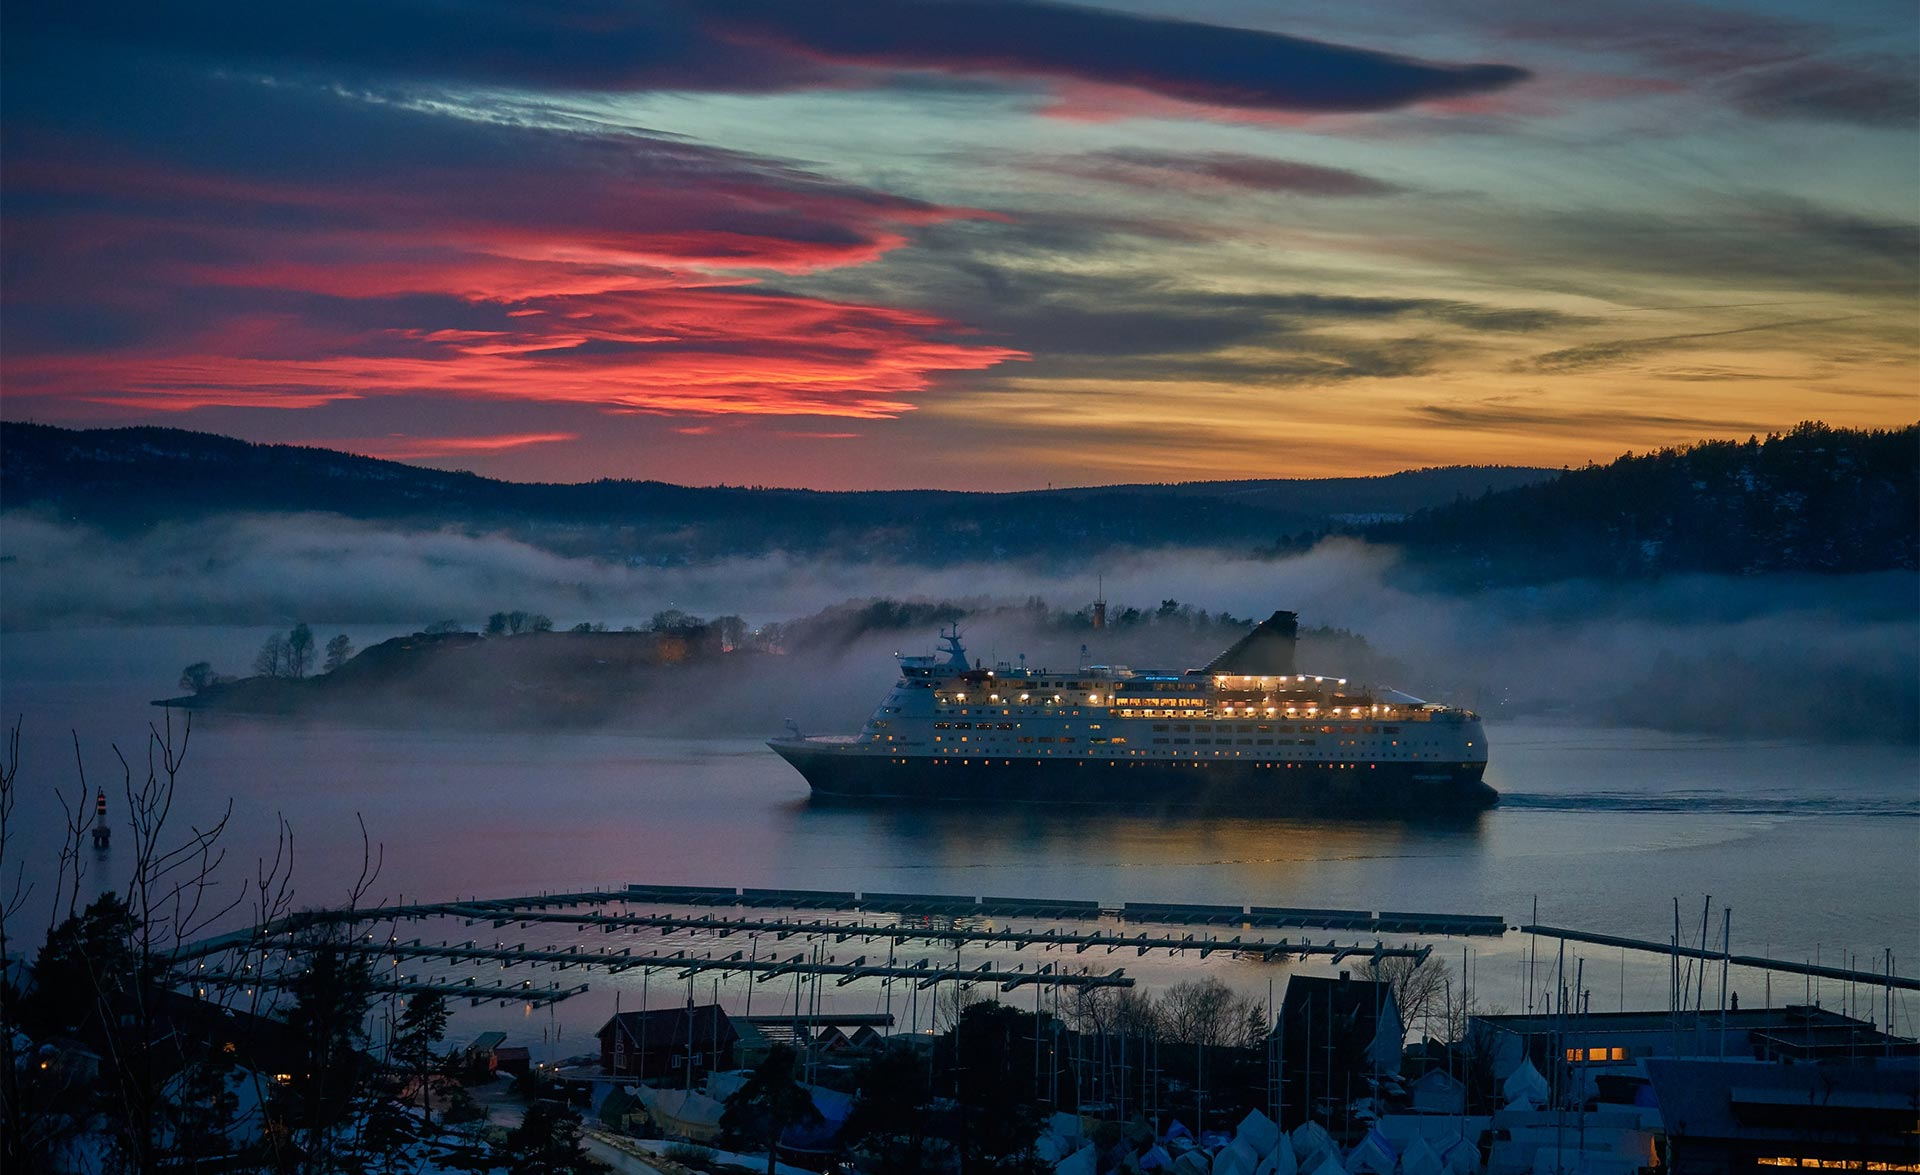 A marine cruise ship sails at dusk on a Norwegian fjord